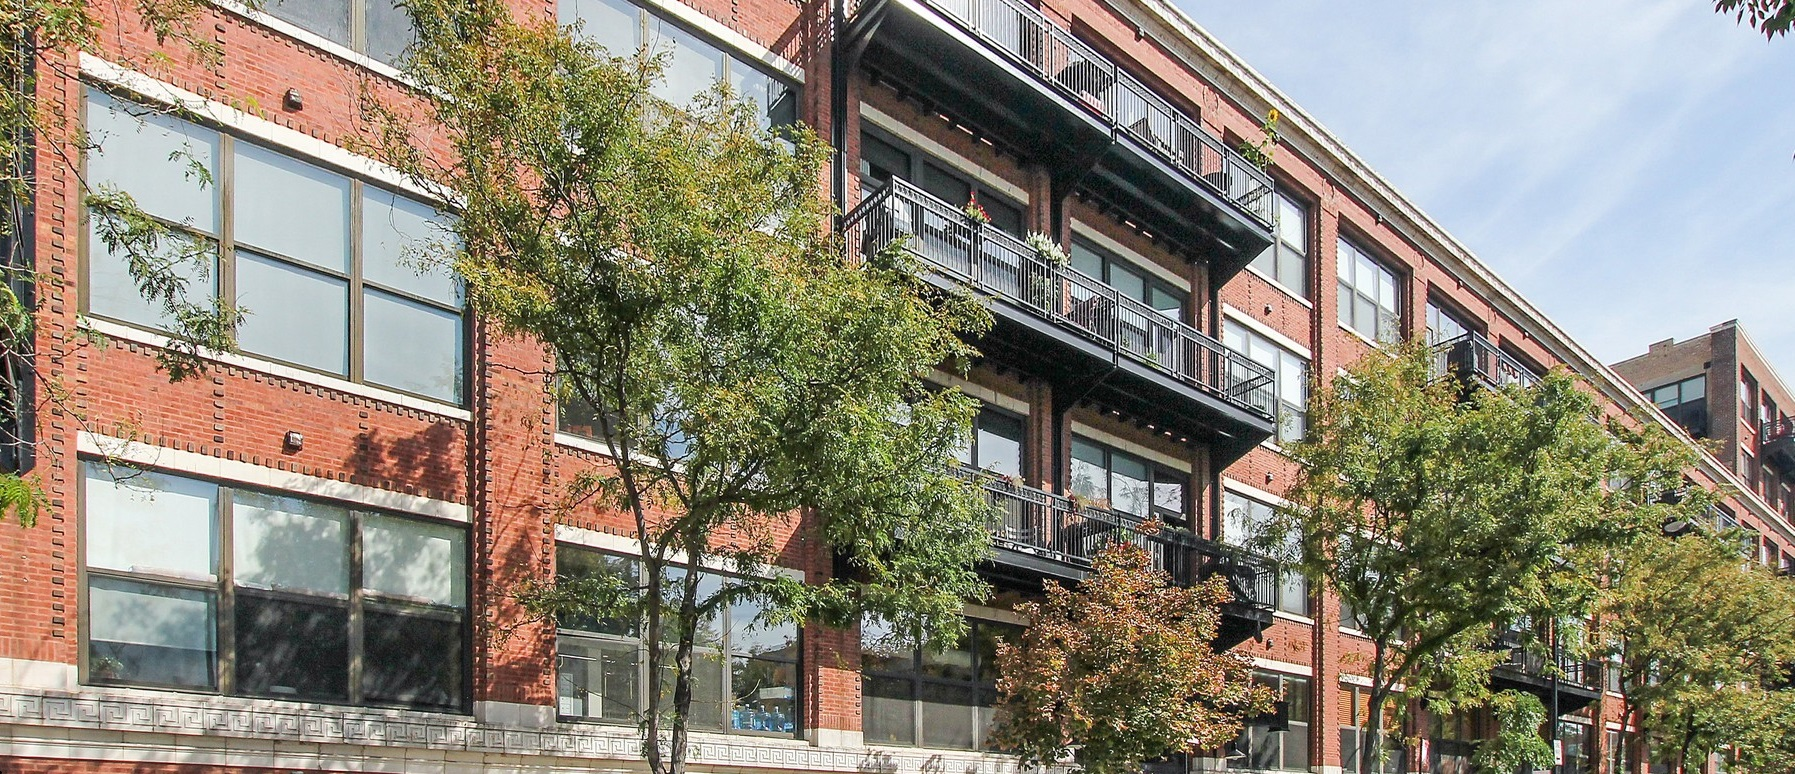 Condominium for Sale at True Timber Loft 1040 W Adams Street #260 Near West Side, Chicago, Illinois 60607 United States